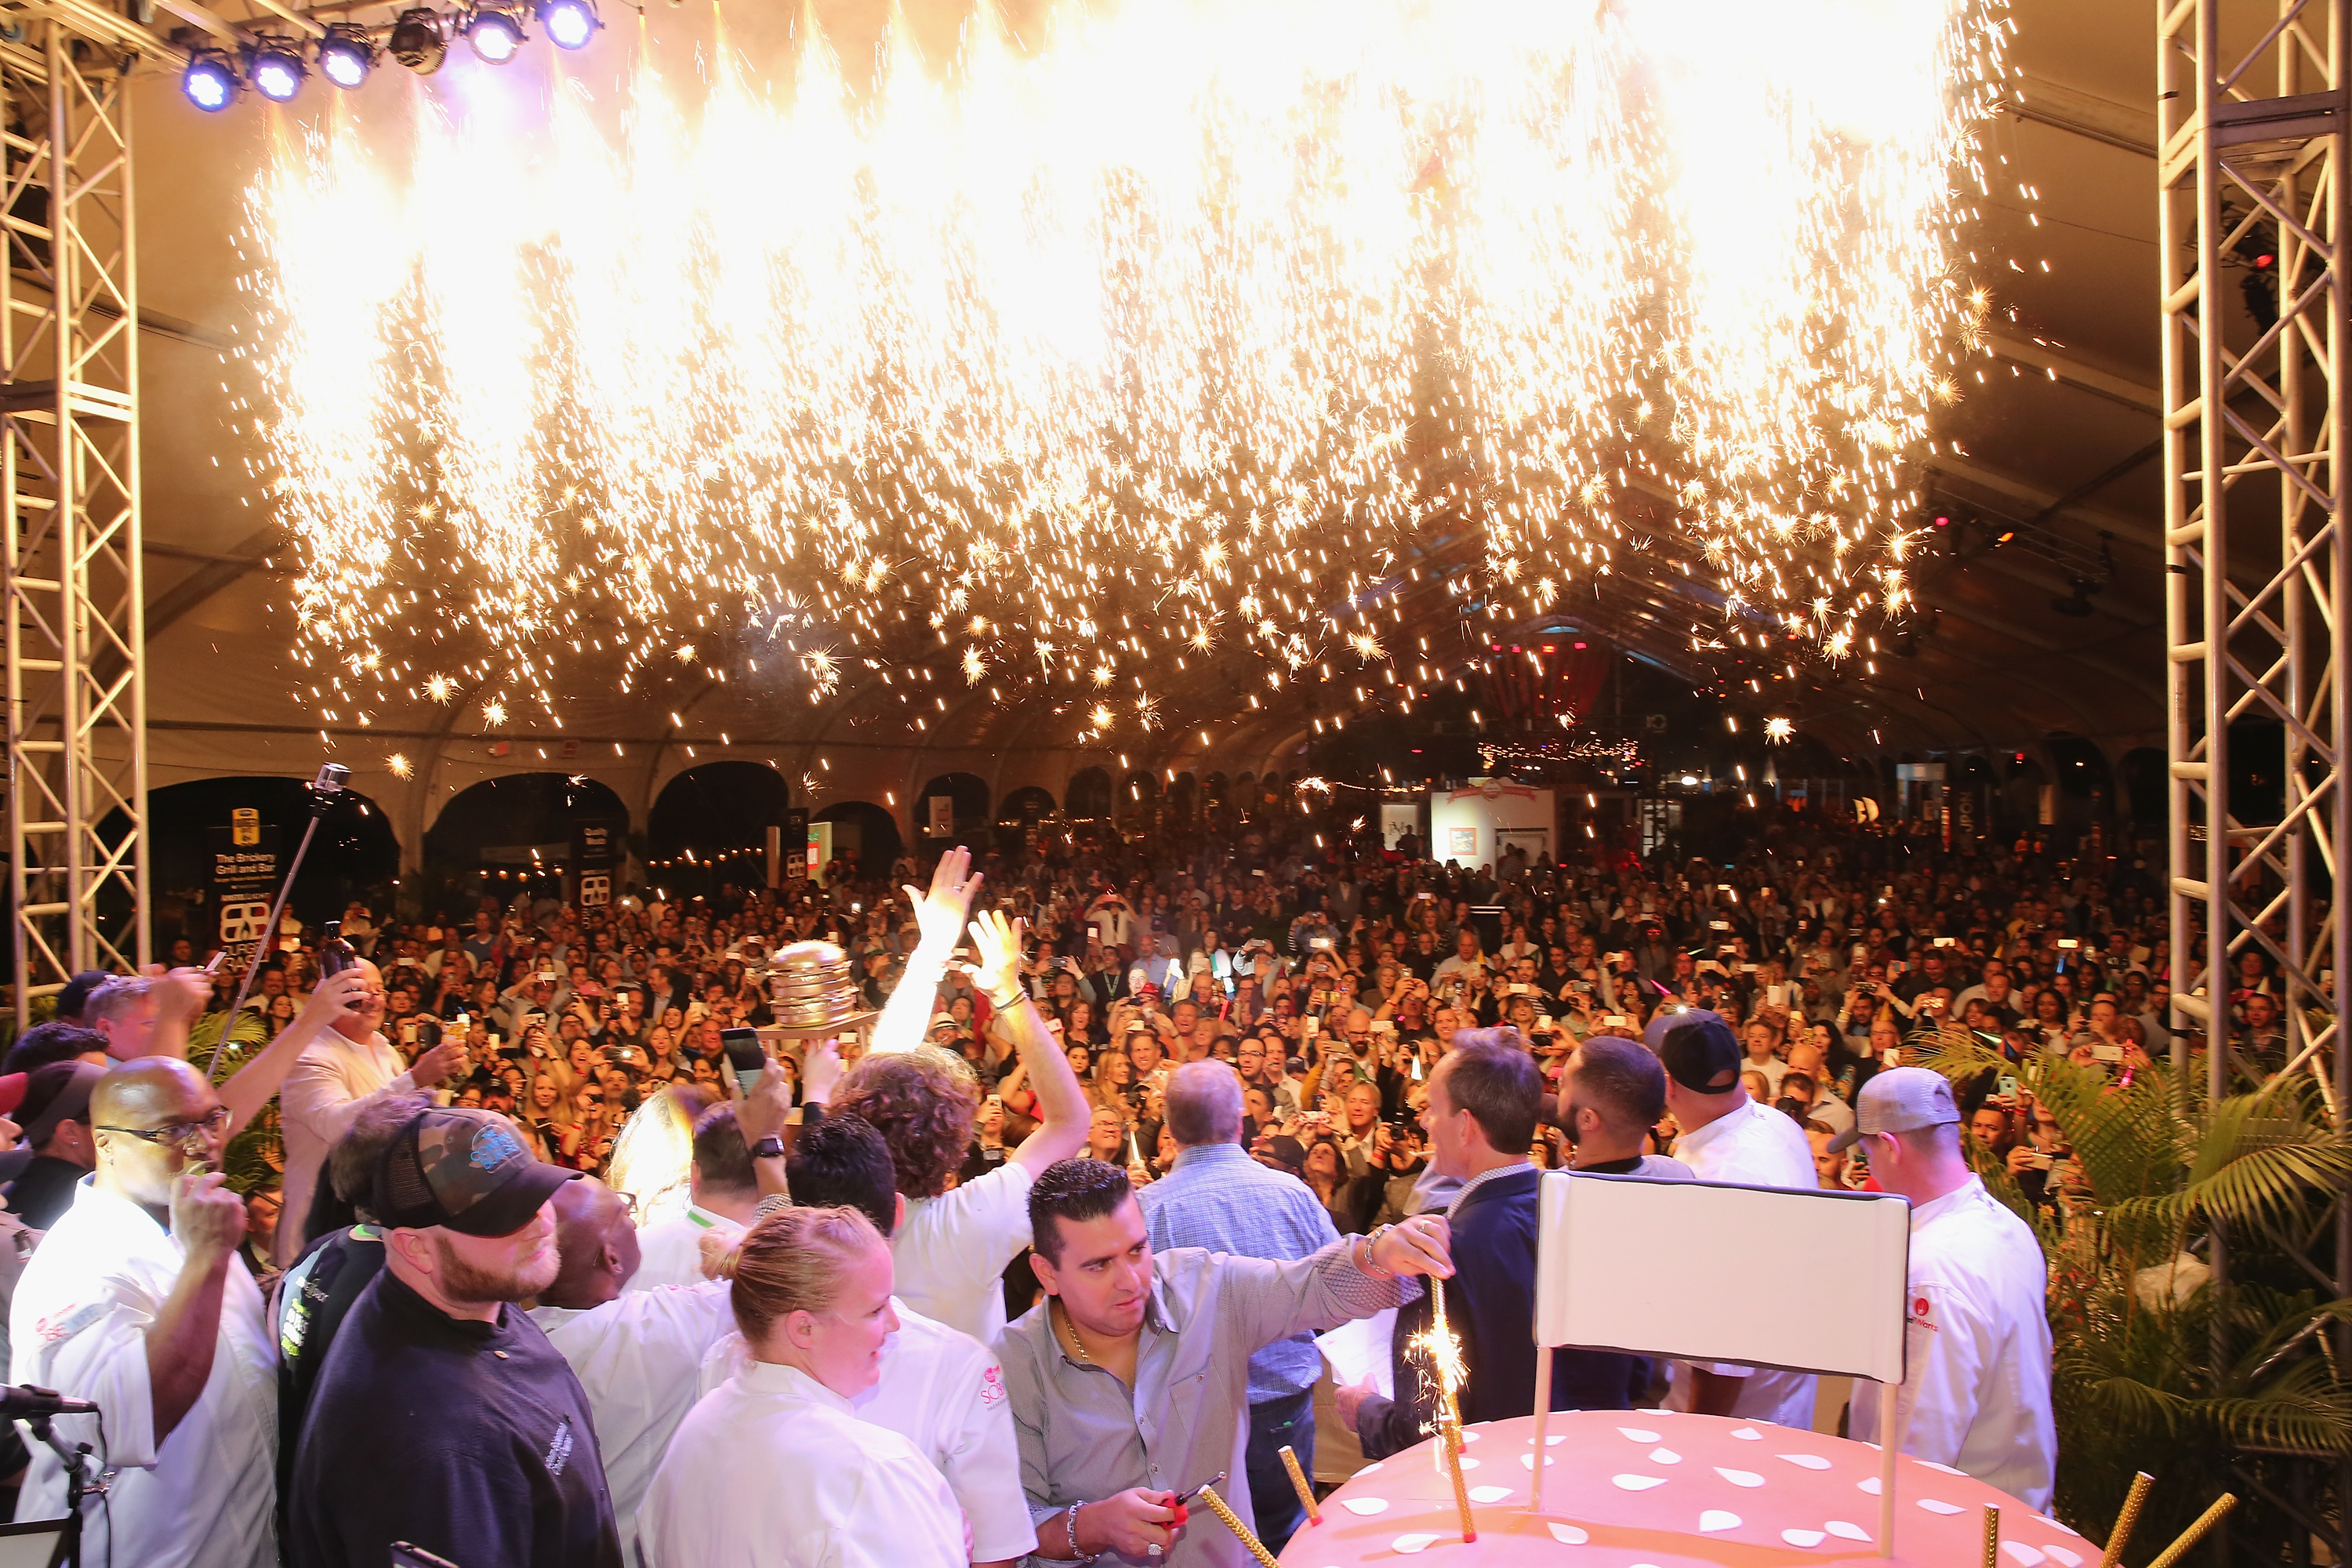 Miami Crowd's Guide to South Beach Wine & Food Festival